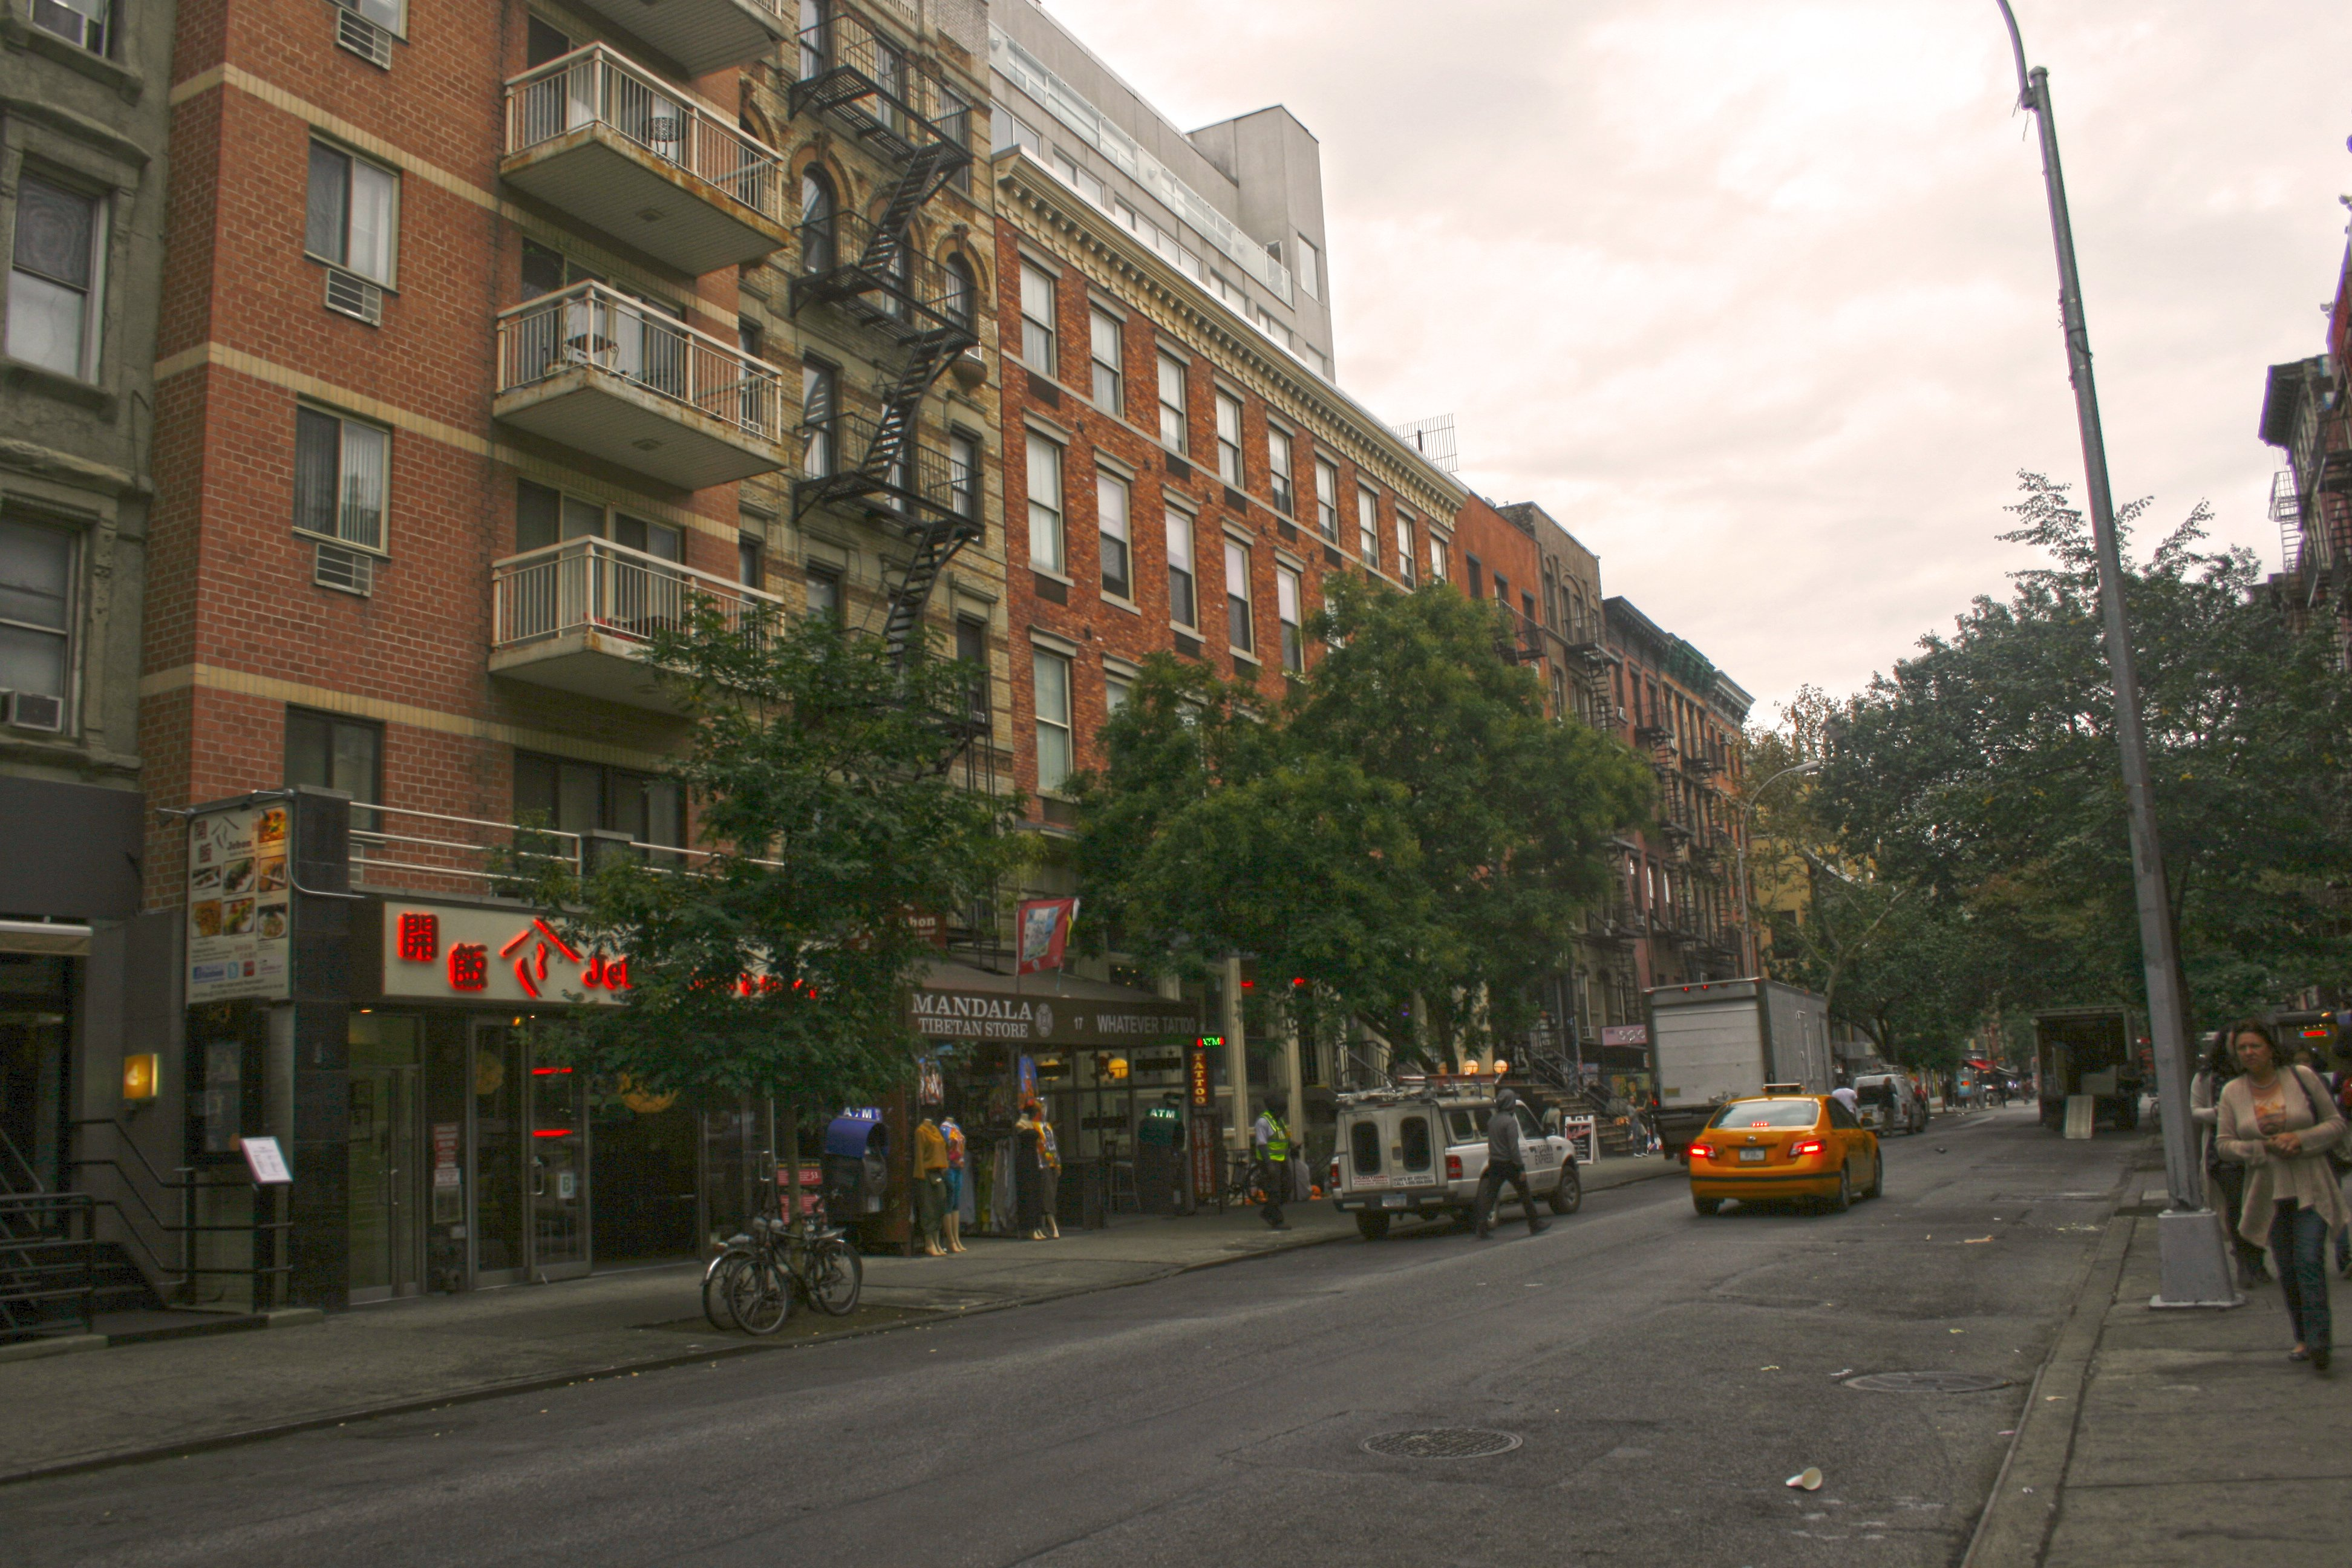 st marks place